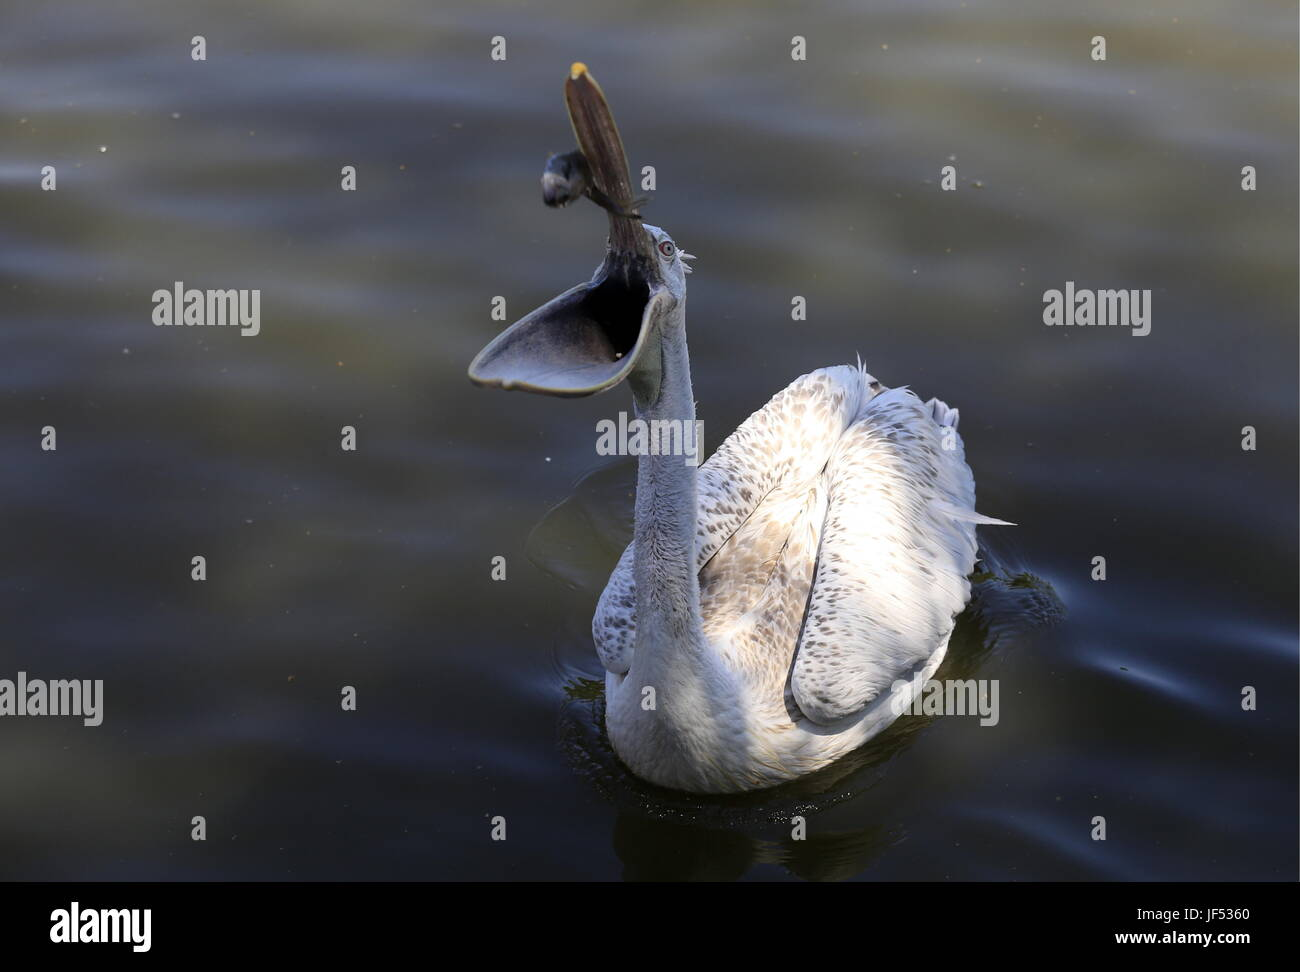 ROSTOV-ON-DON, RUSSIA – JUNE 28, 2017: A pelican at the Rostov-on-Don Zoo. Valery Matytsin/TASS - Stock Image